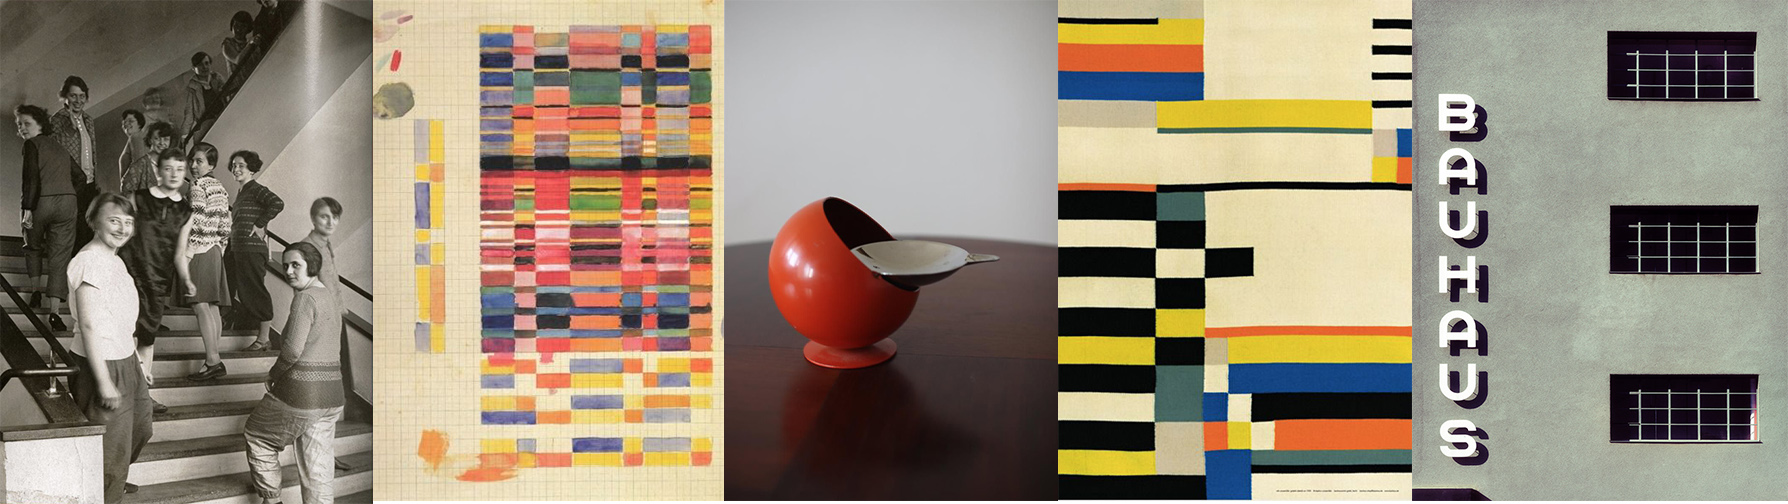 bconnected-blog-The success of the women in Bauhaus